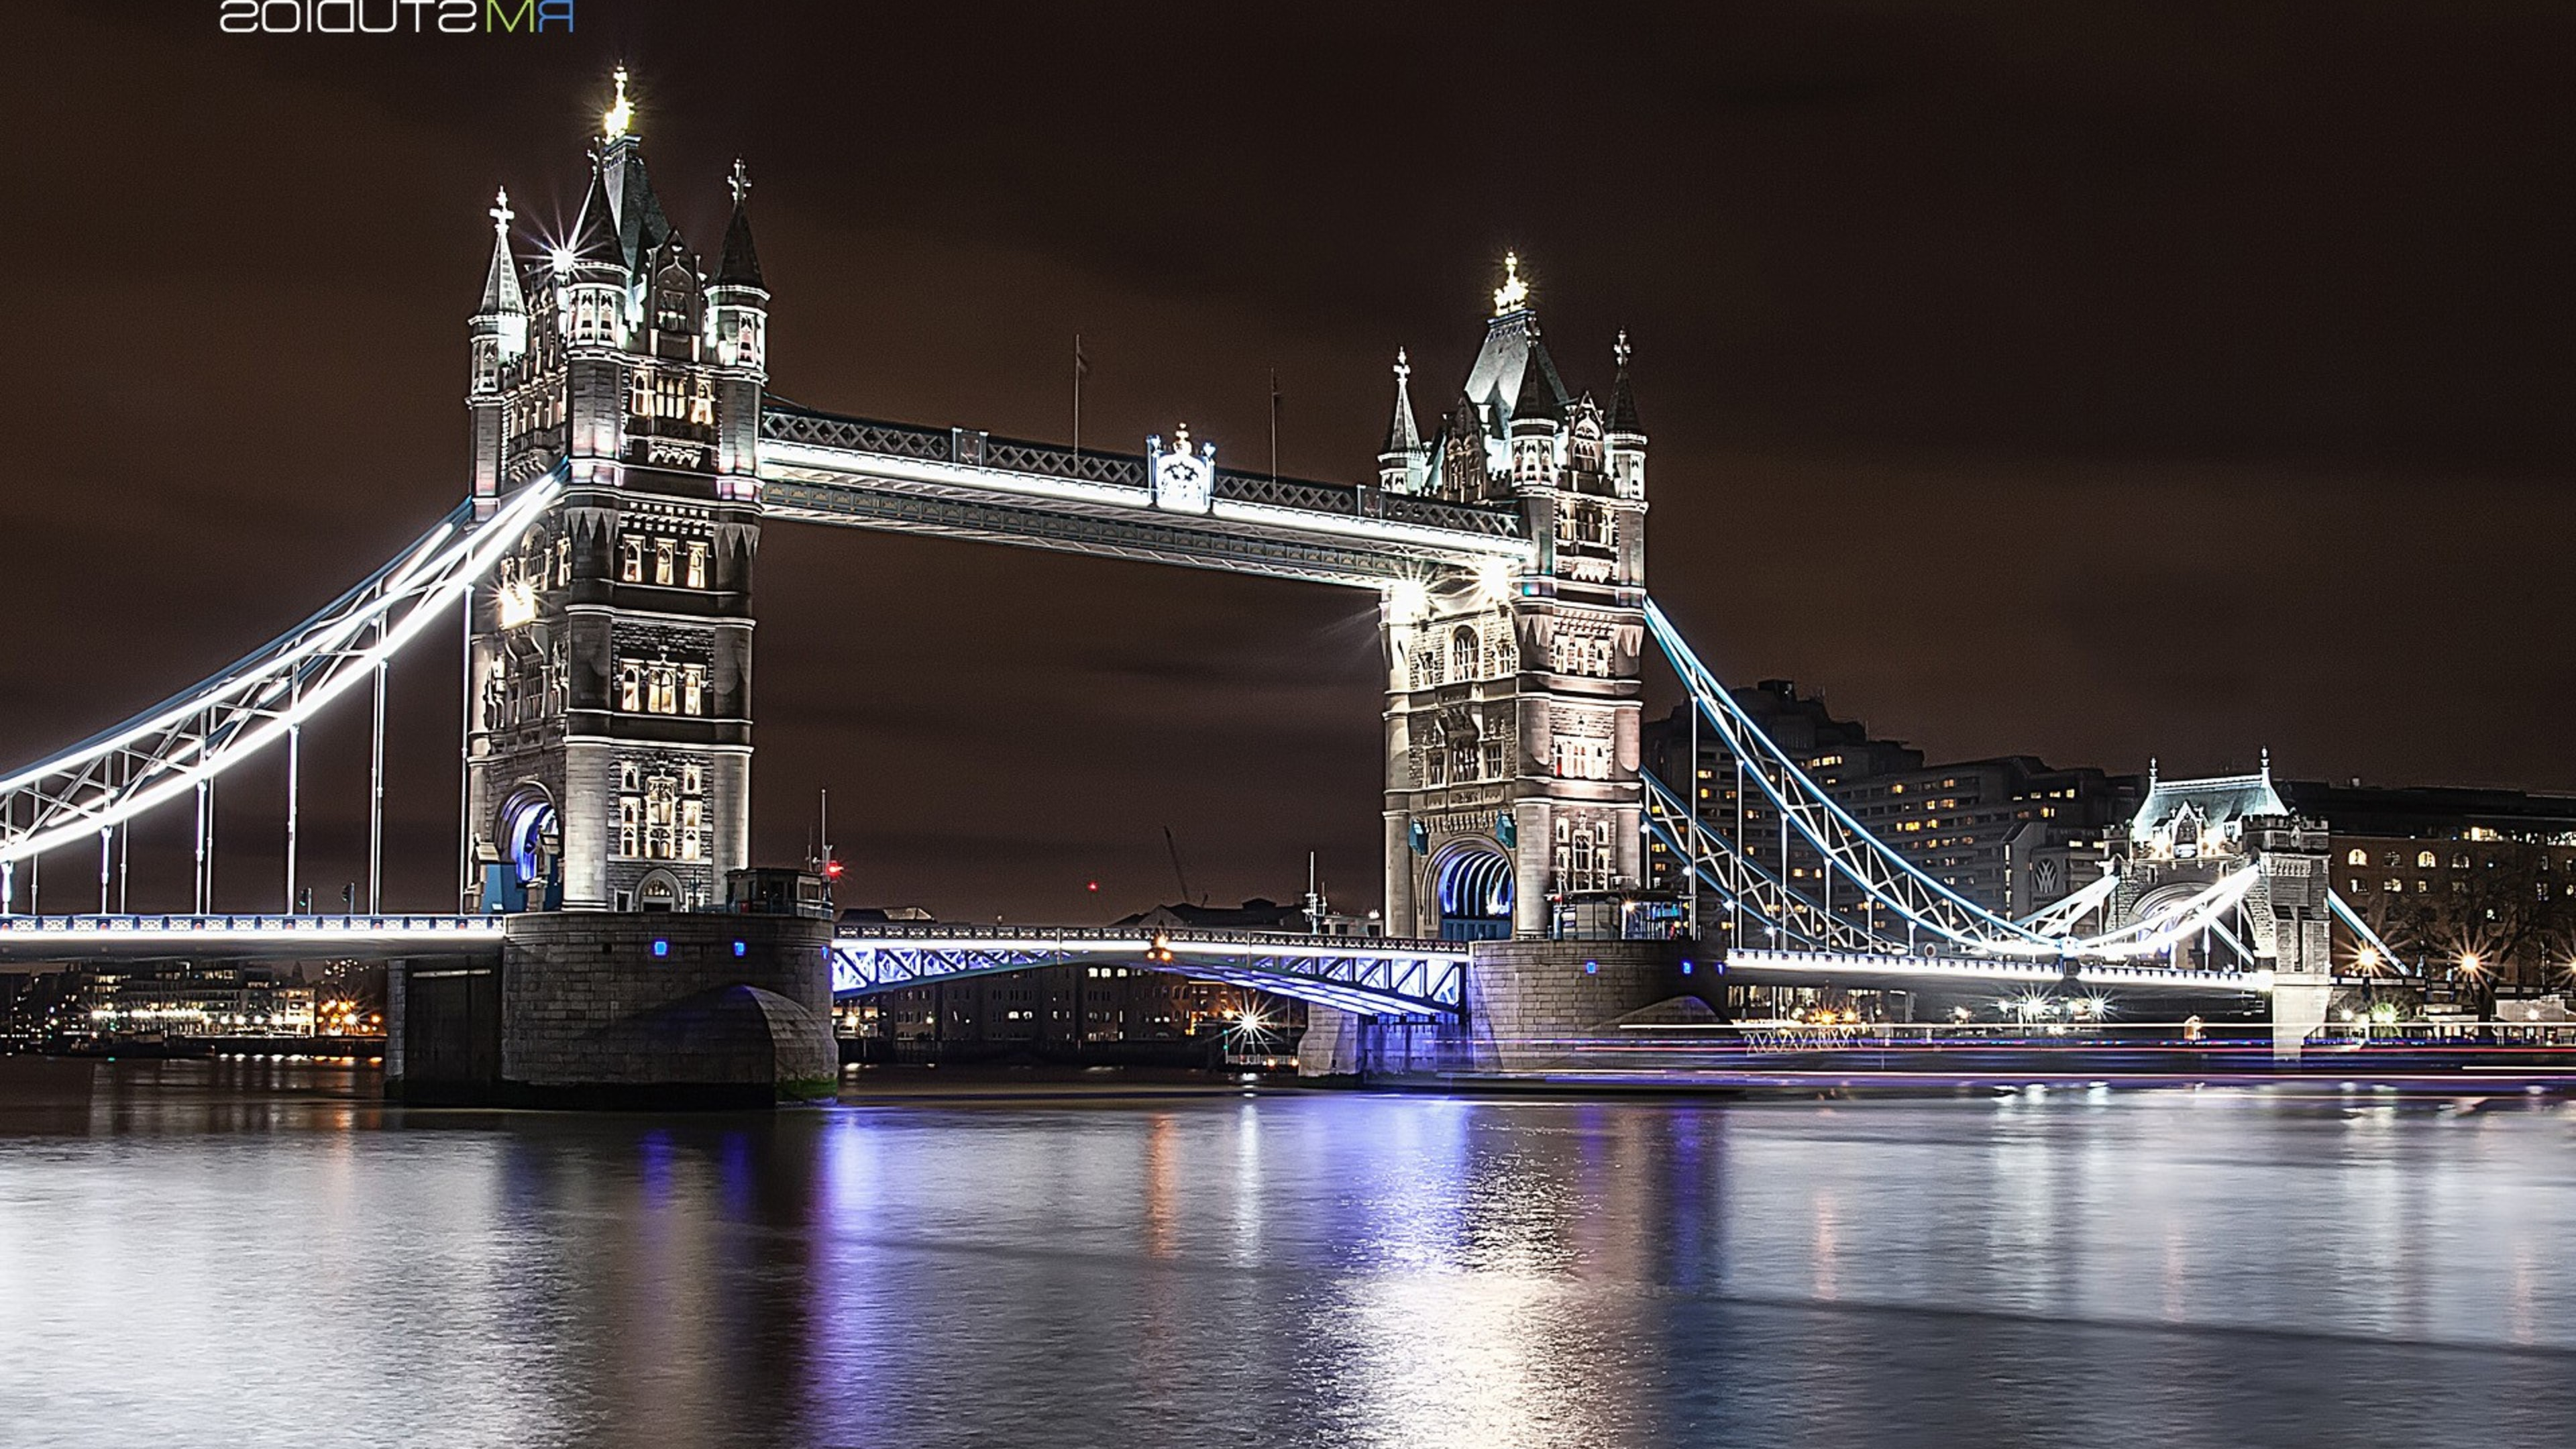 480x854 Tower Bridge At Night Android One HD 4k Wallpapers